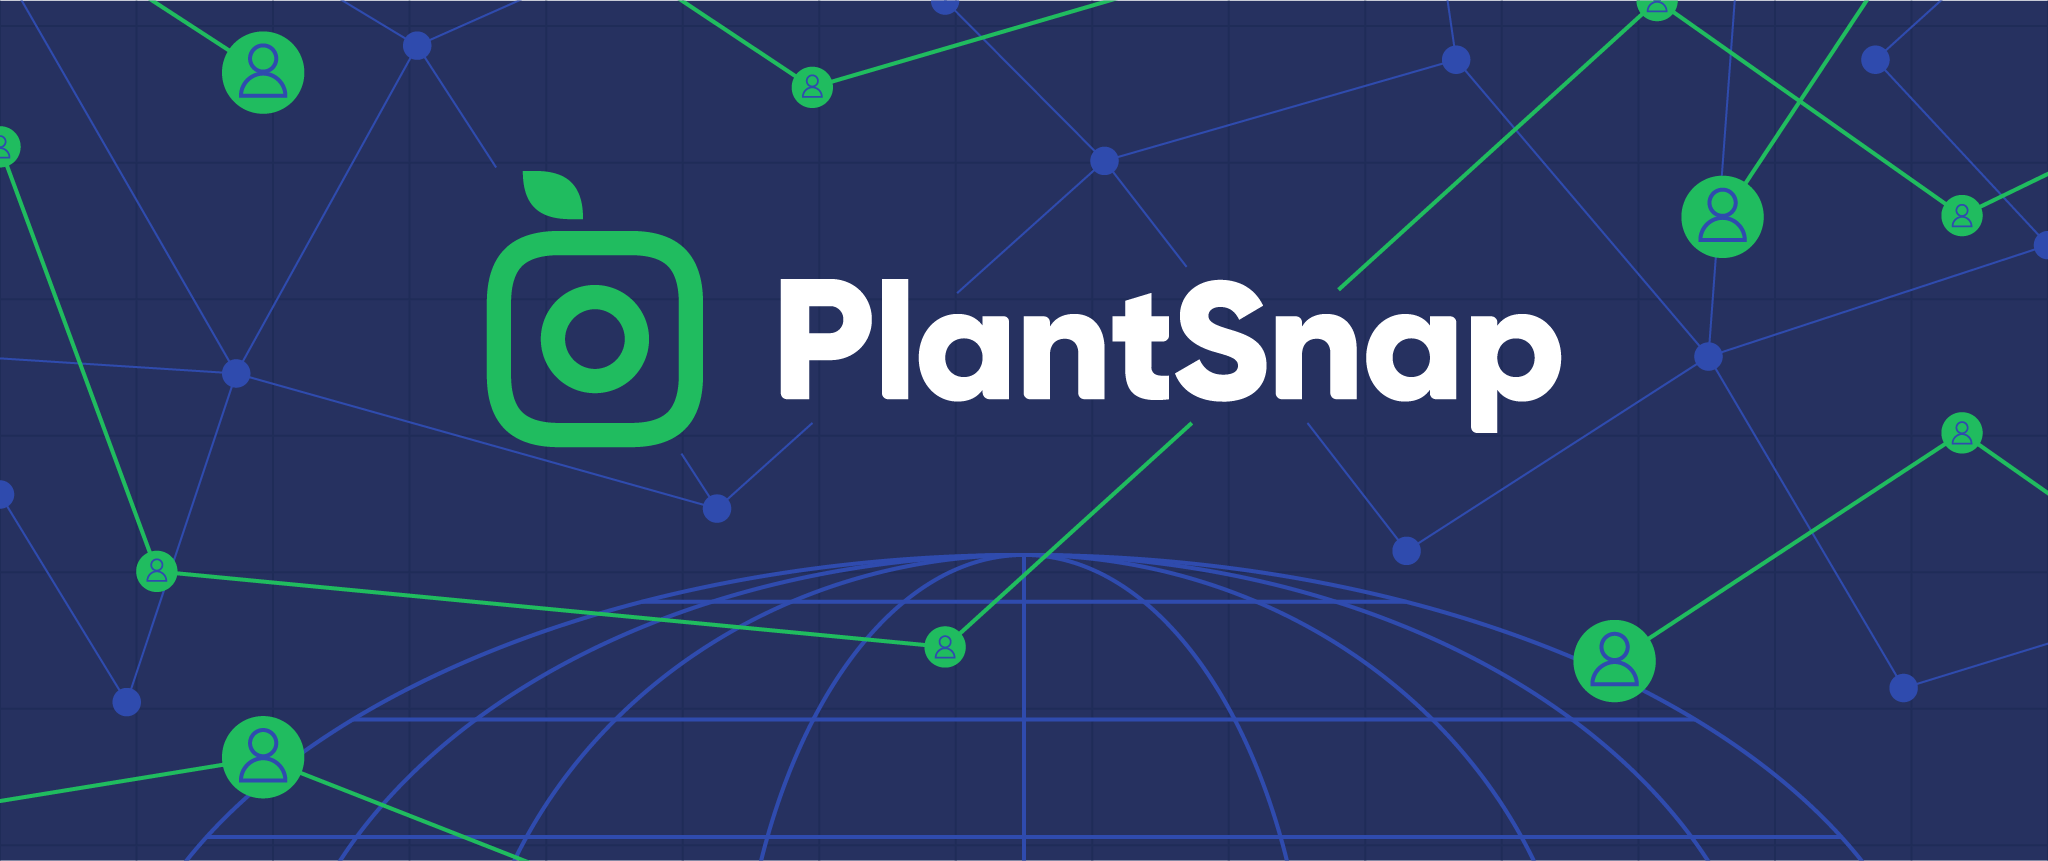 How PlantSnap Built a Global User Base